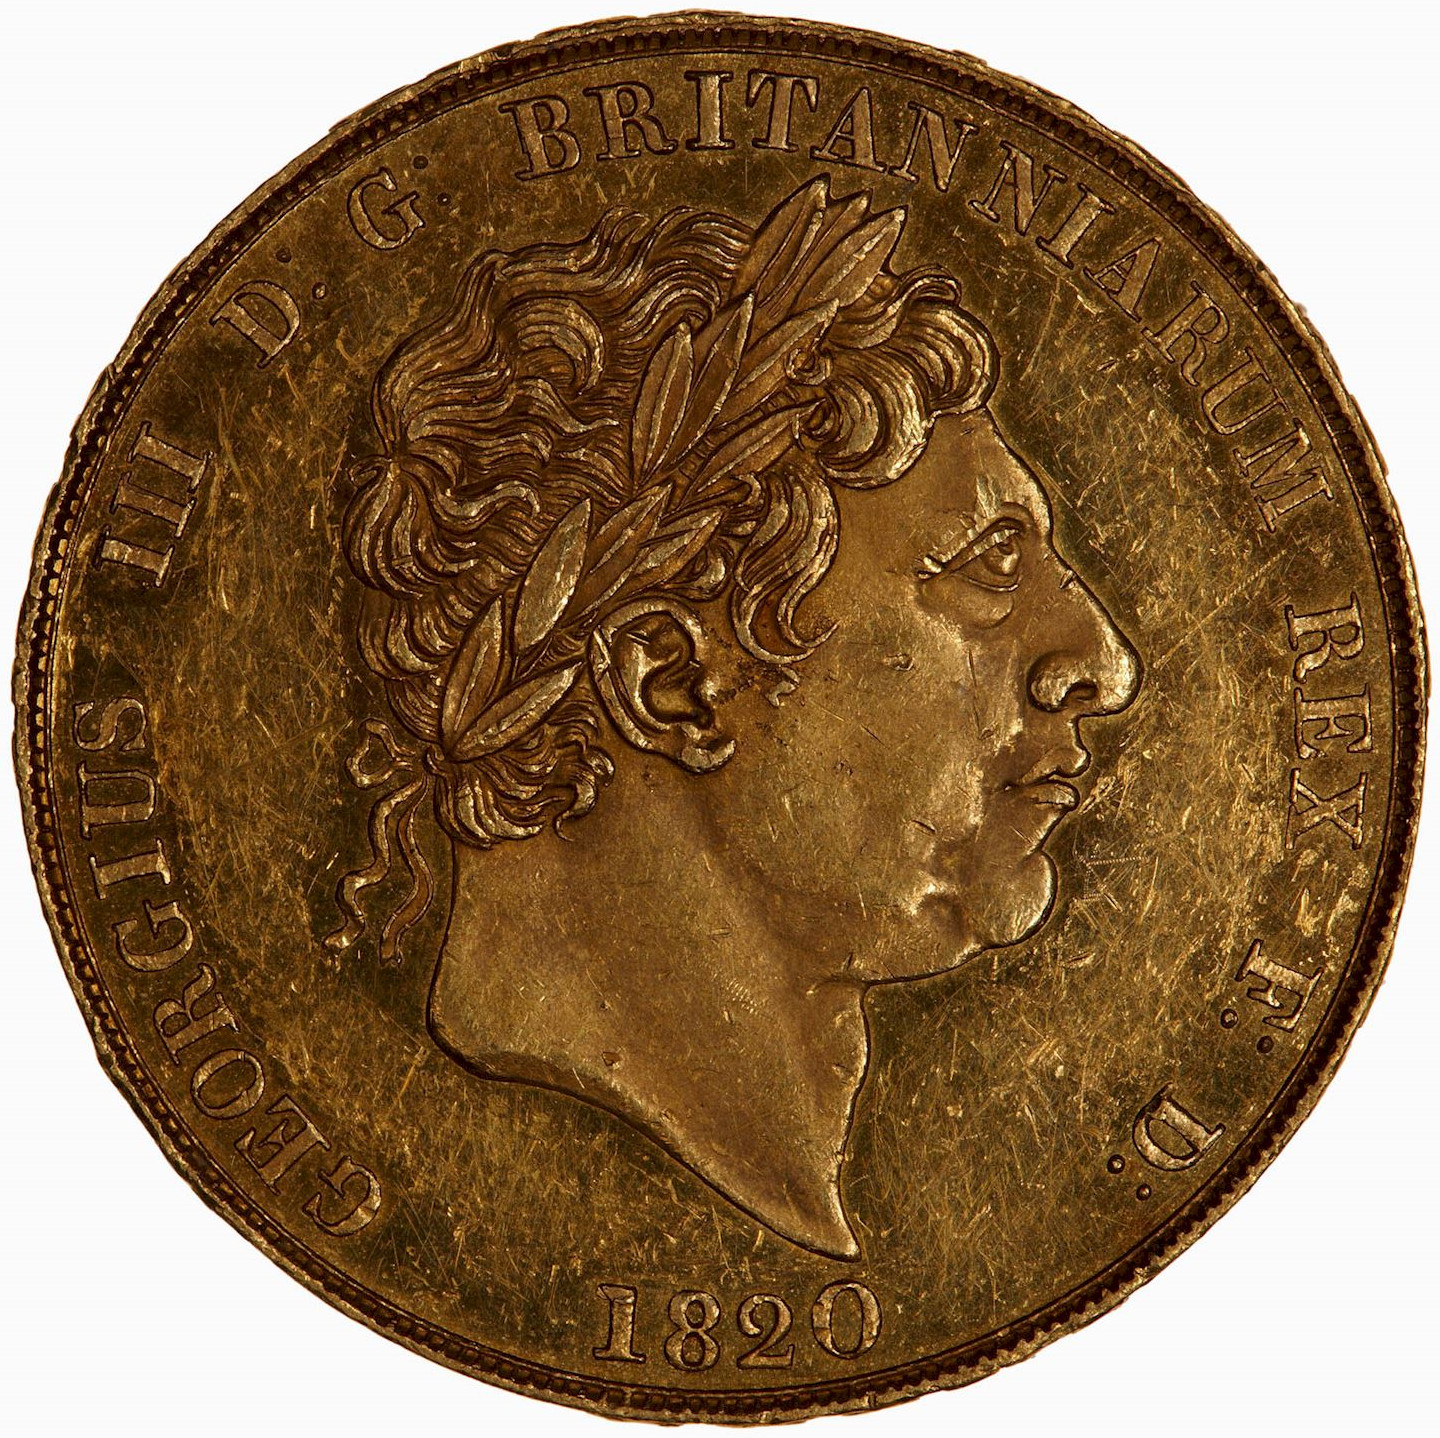 Two Pounds (Pre-decimal): Photo Coin - 2 Pounds, George III, Great Britain, 1820